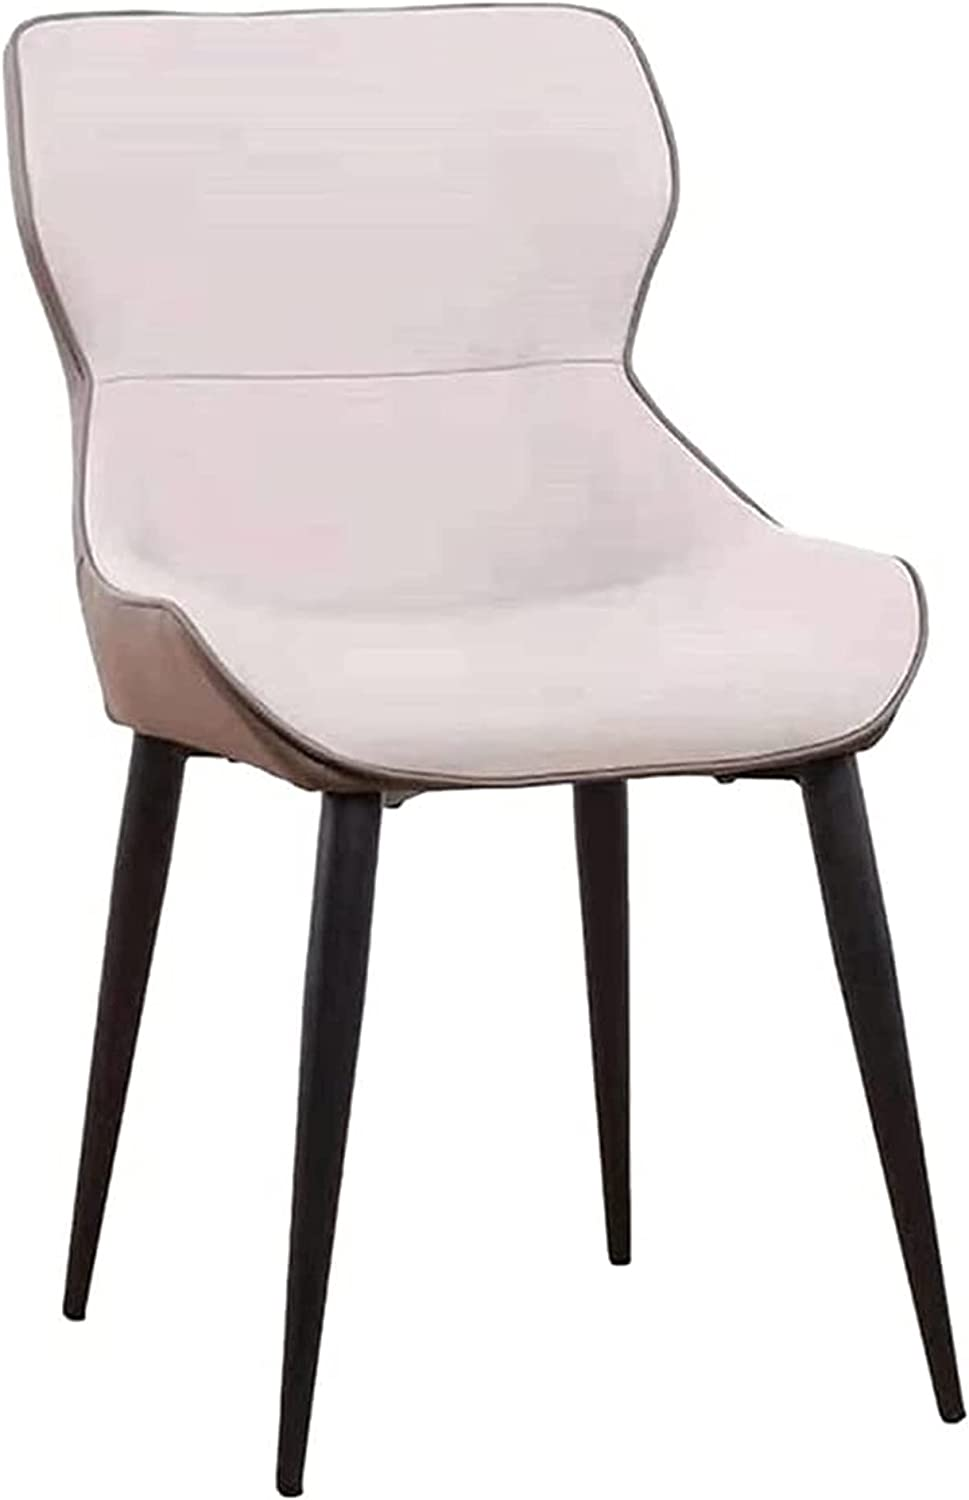 Popular brand in the world High quality Wizard + Genius Modern Simple Negotiat Light Dining Chair Luxury